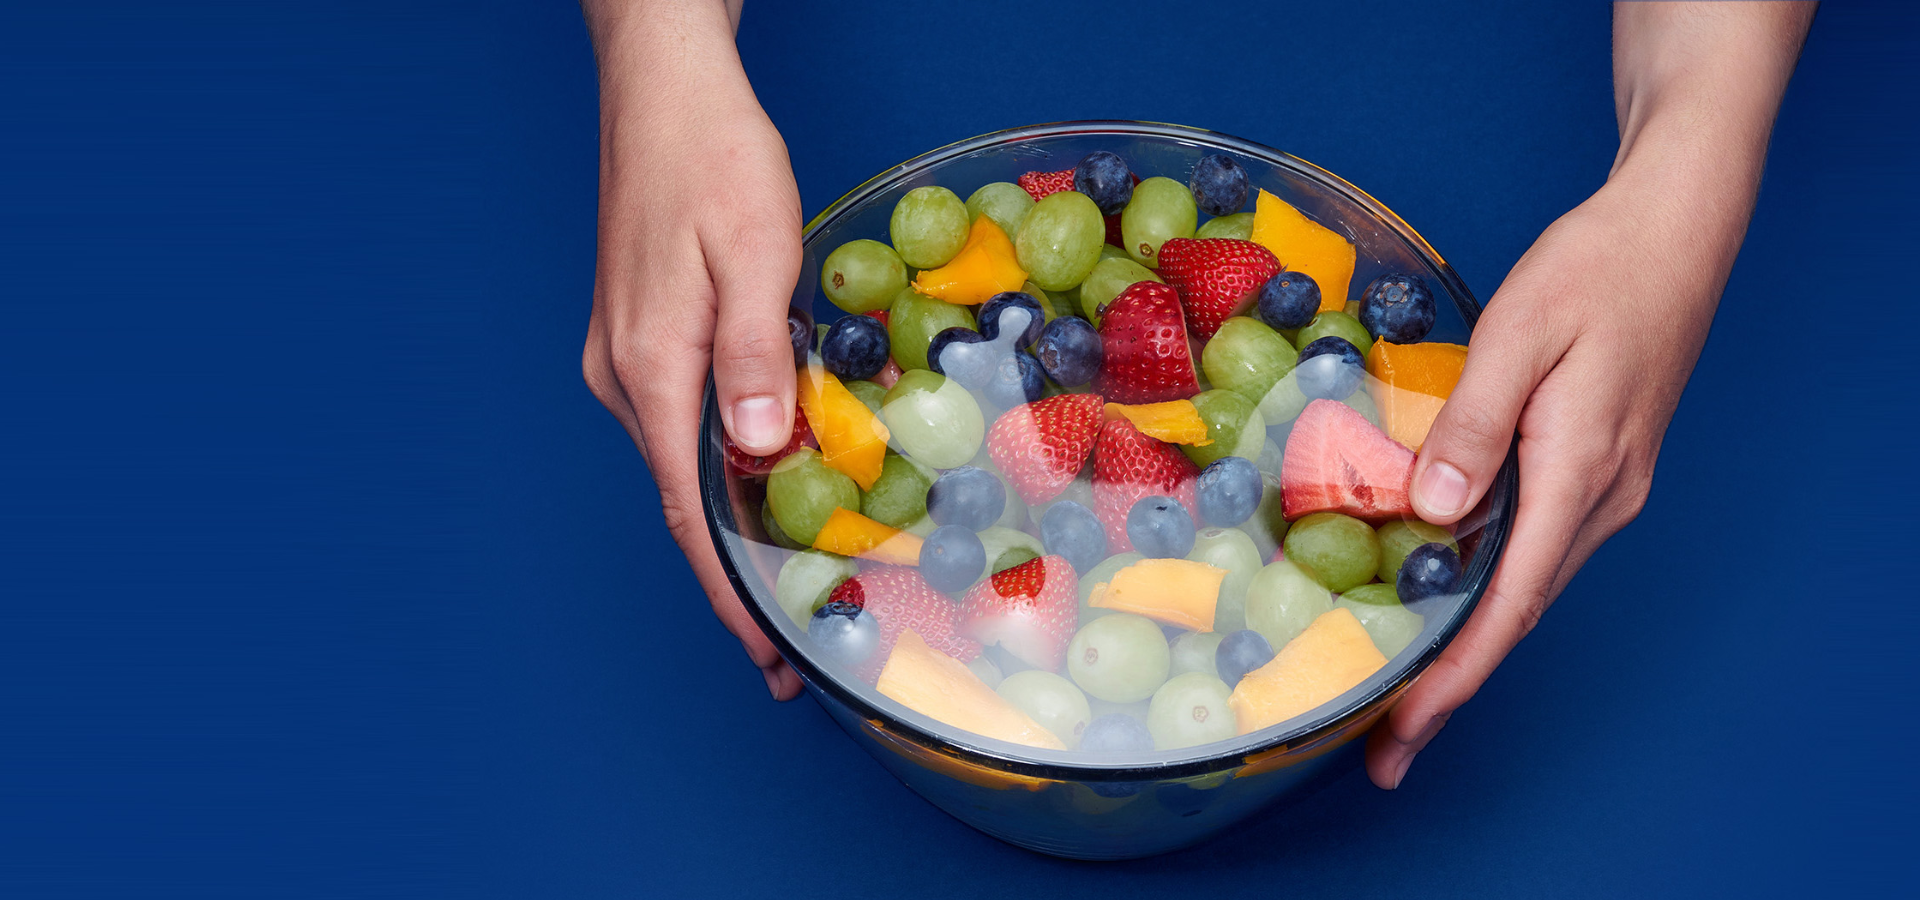 Caucasian female hands holding glass bowl with assorted fruit